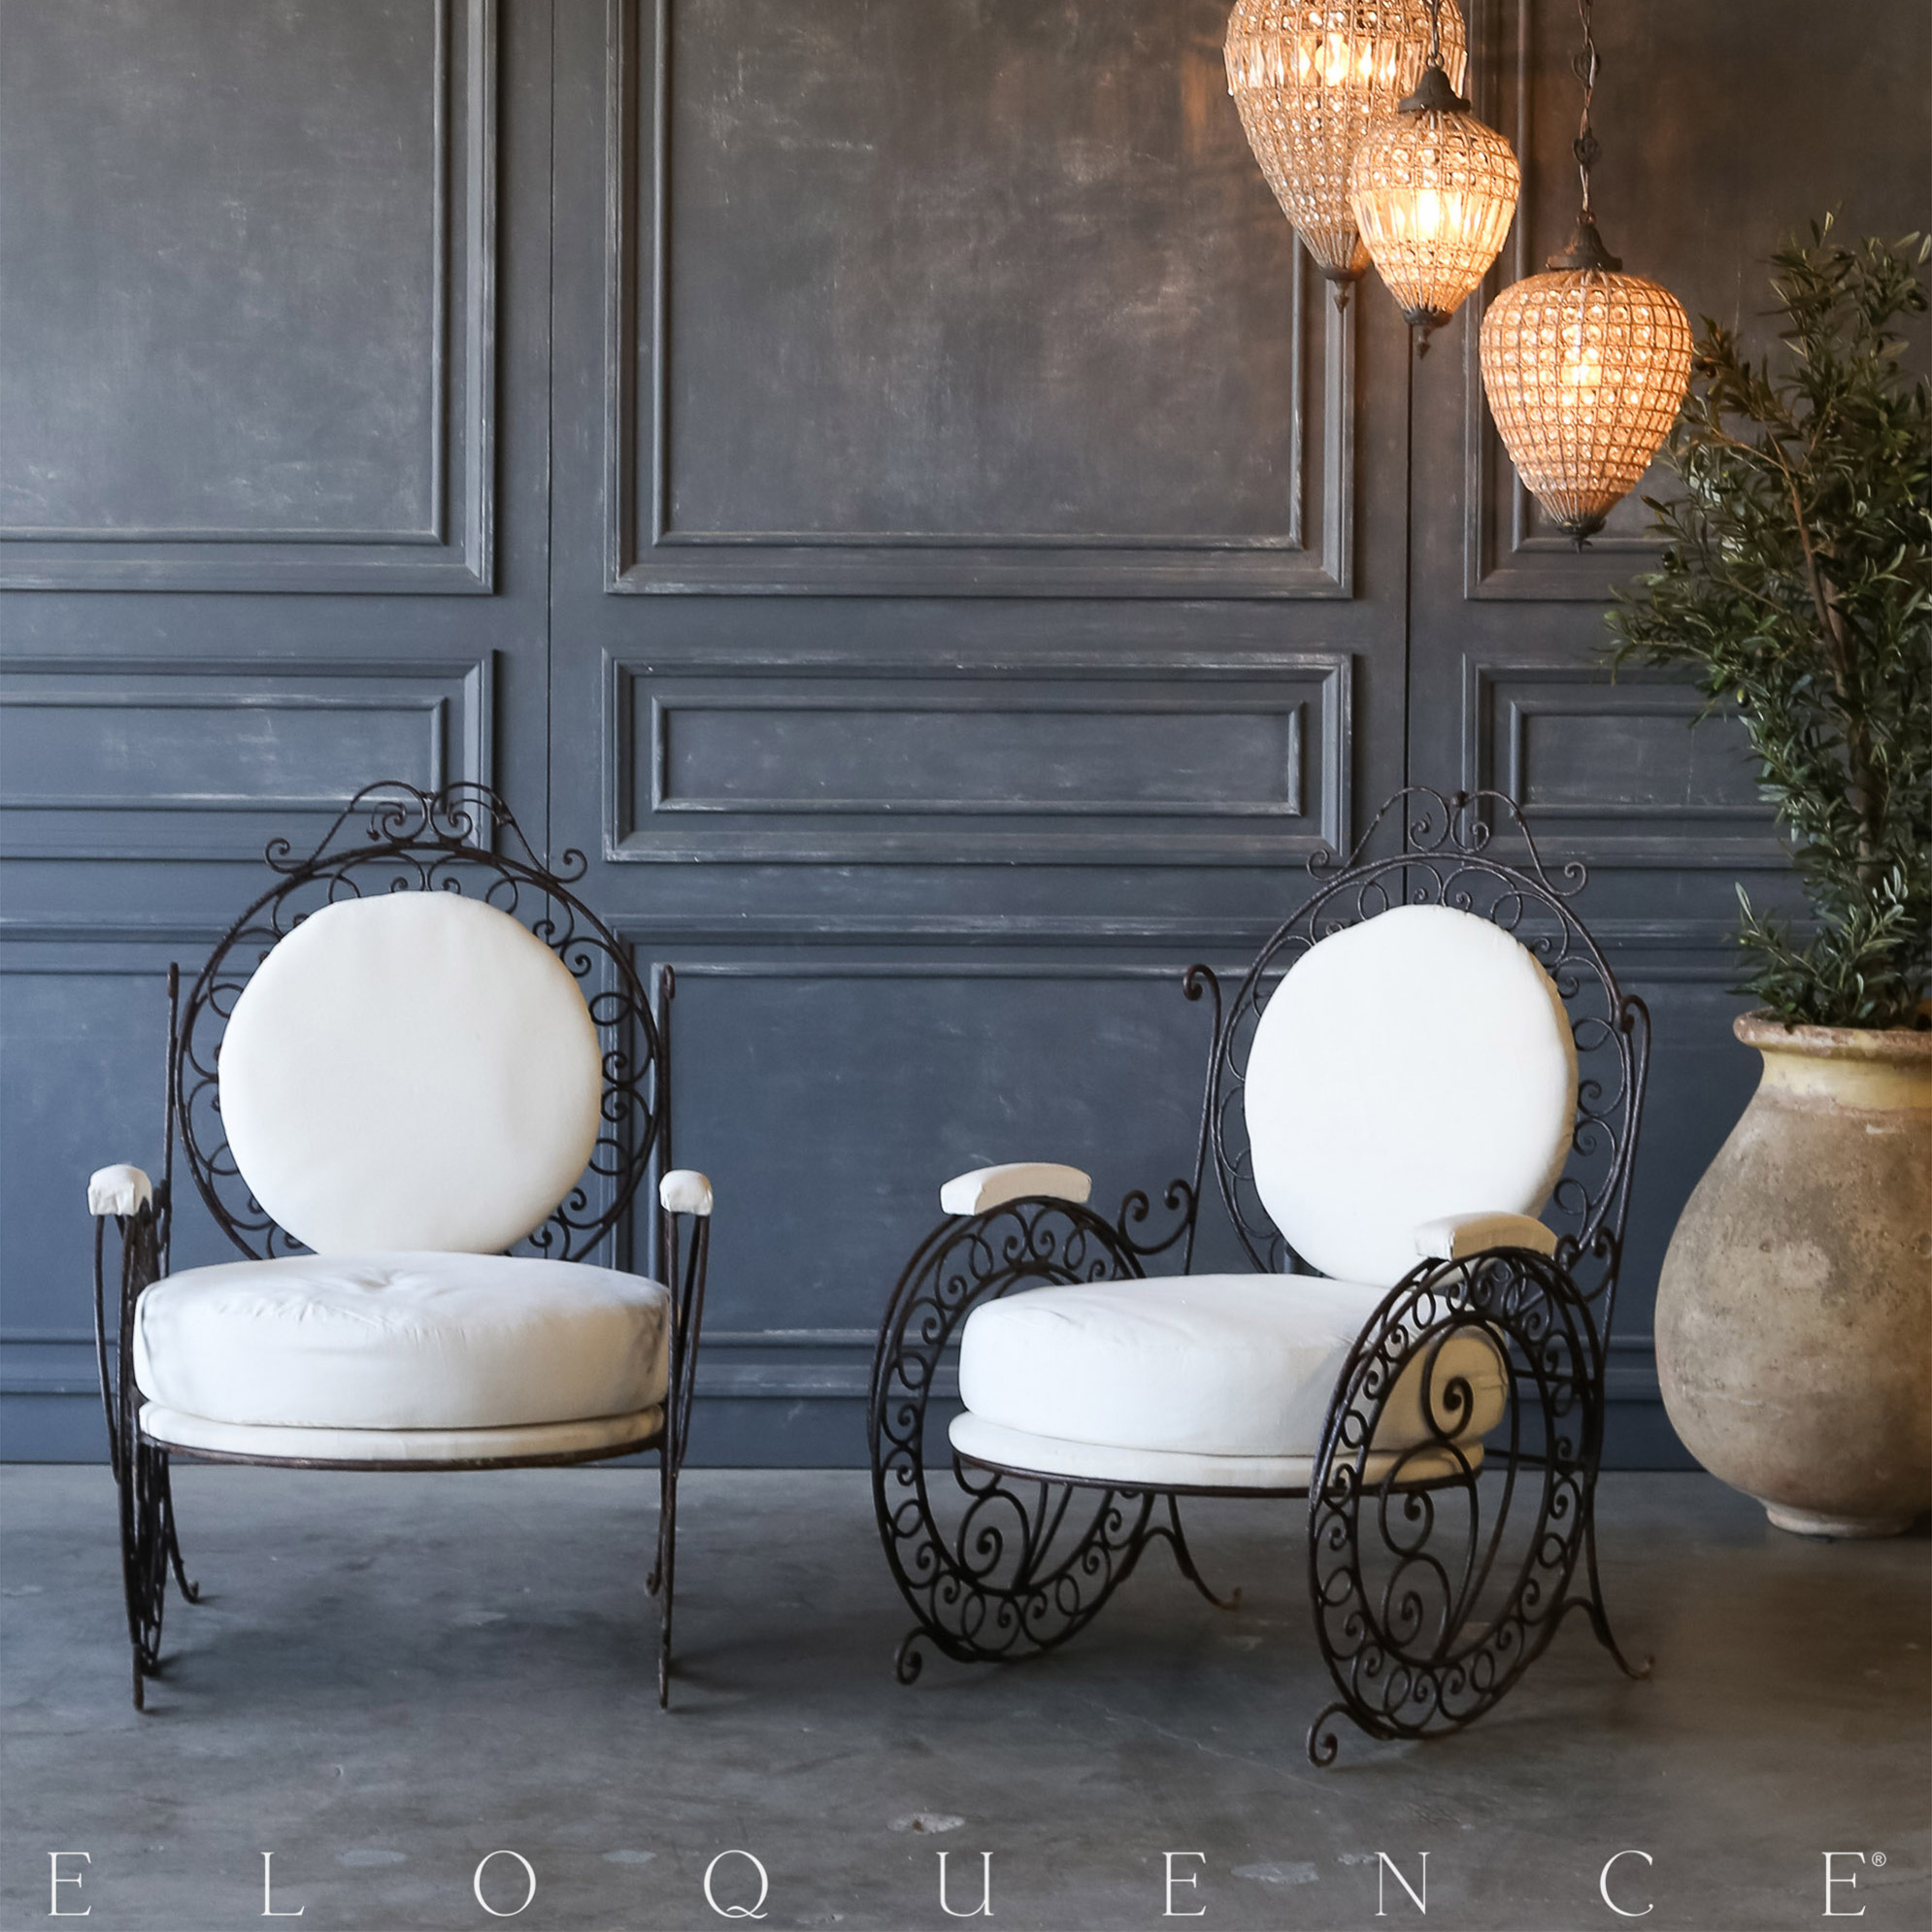 Eloquence® Pair of Vintage Steel Garden Chairs: 1940